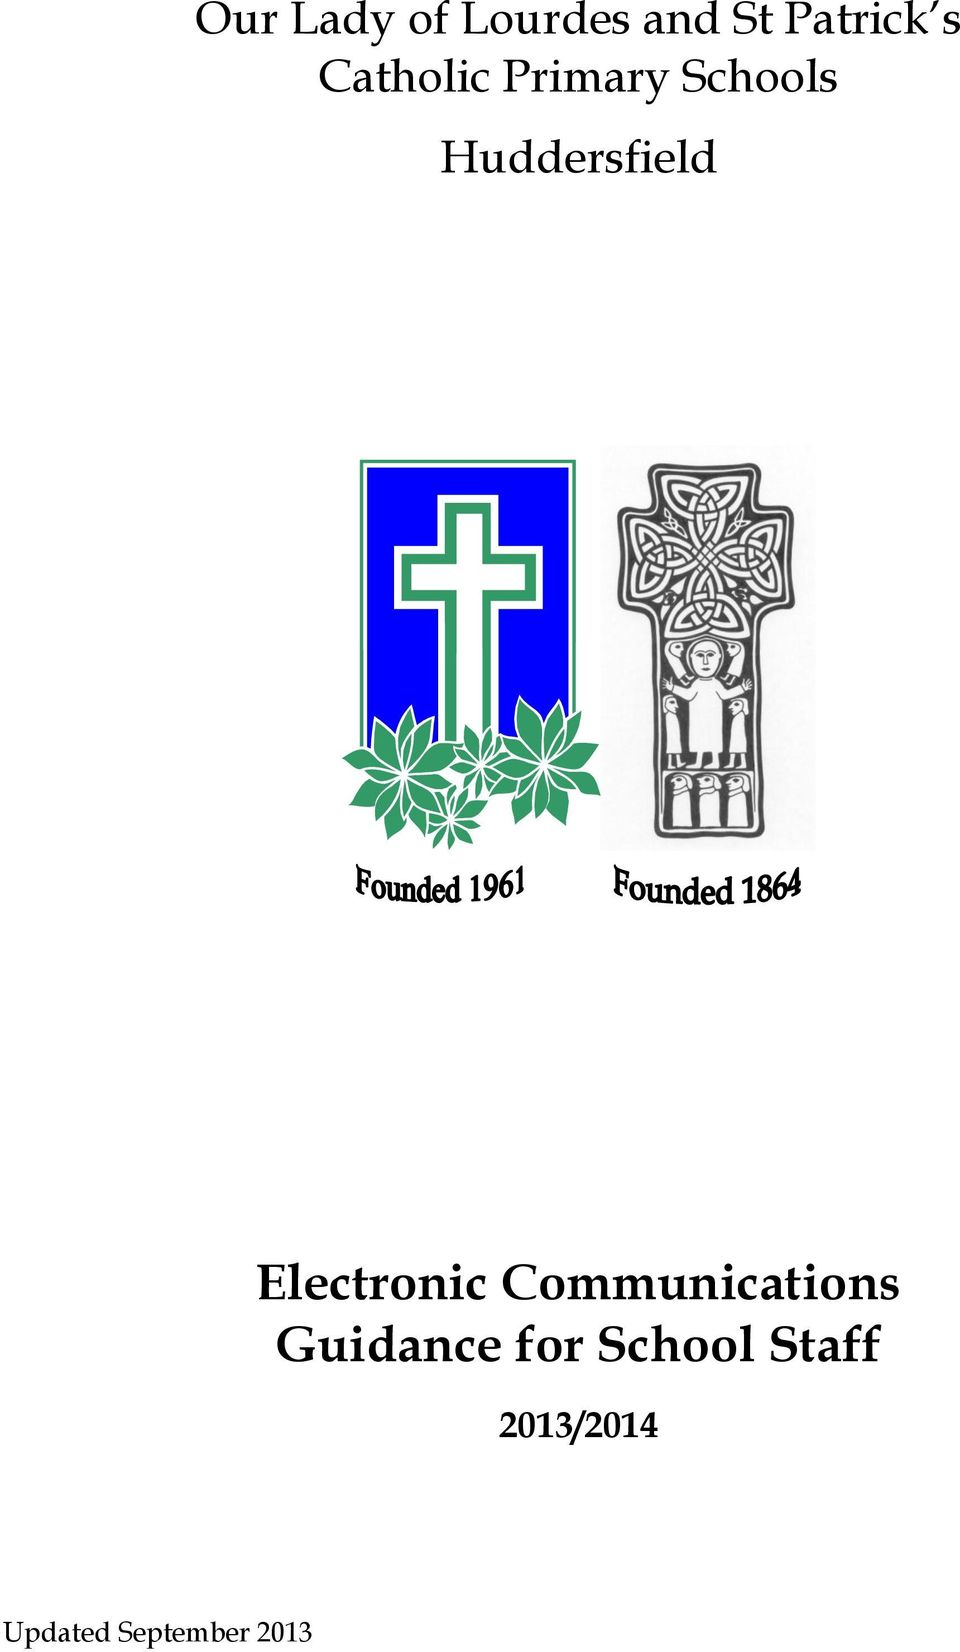 Electronic Communications Guidance for